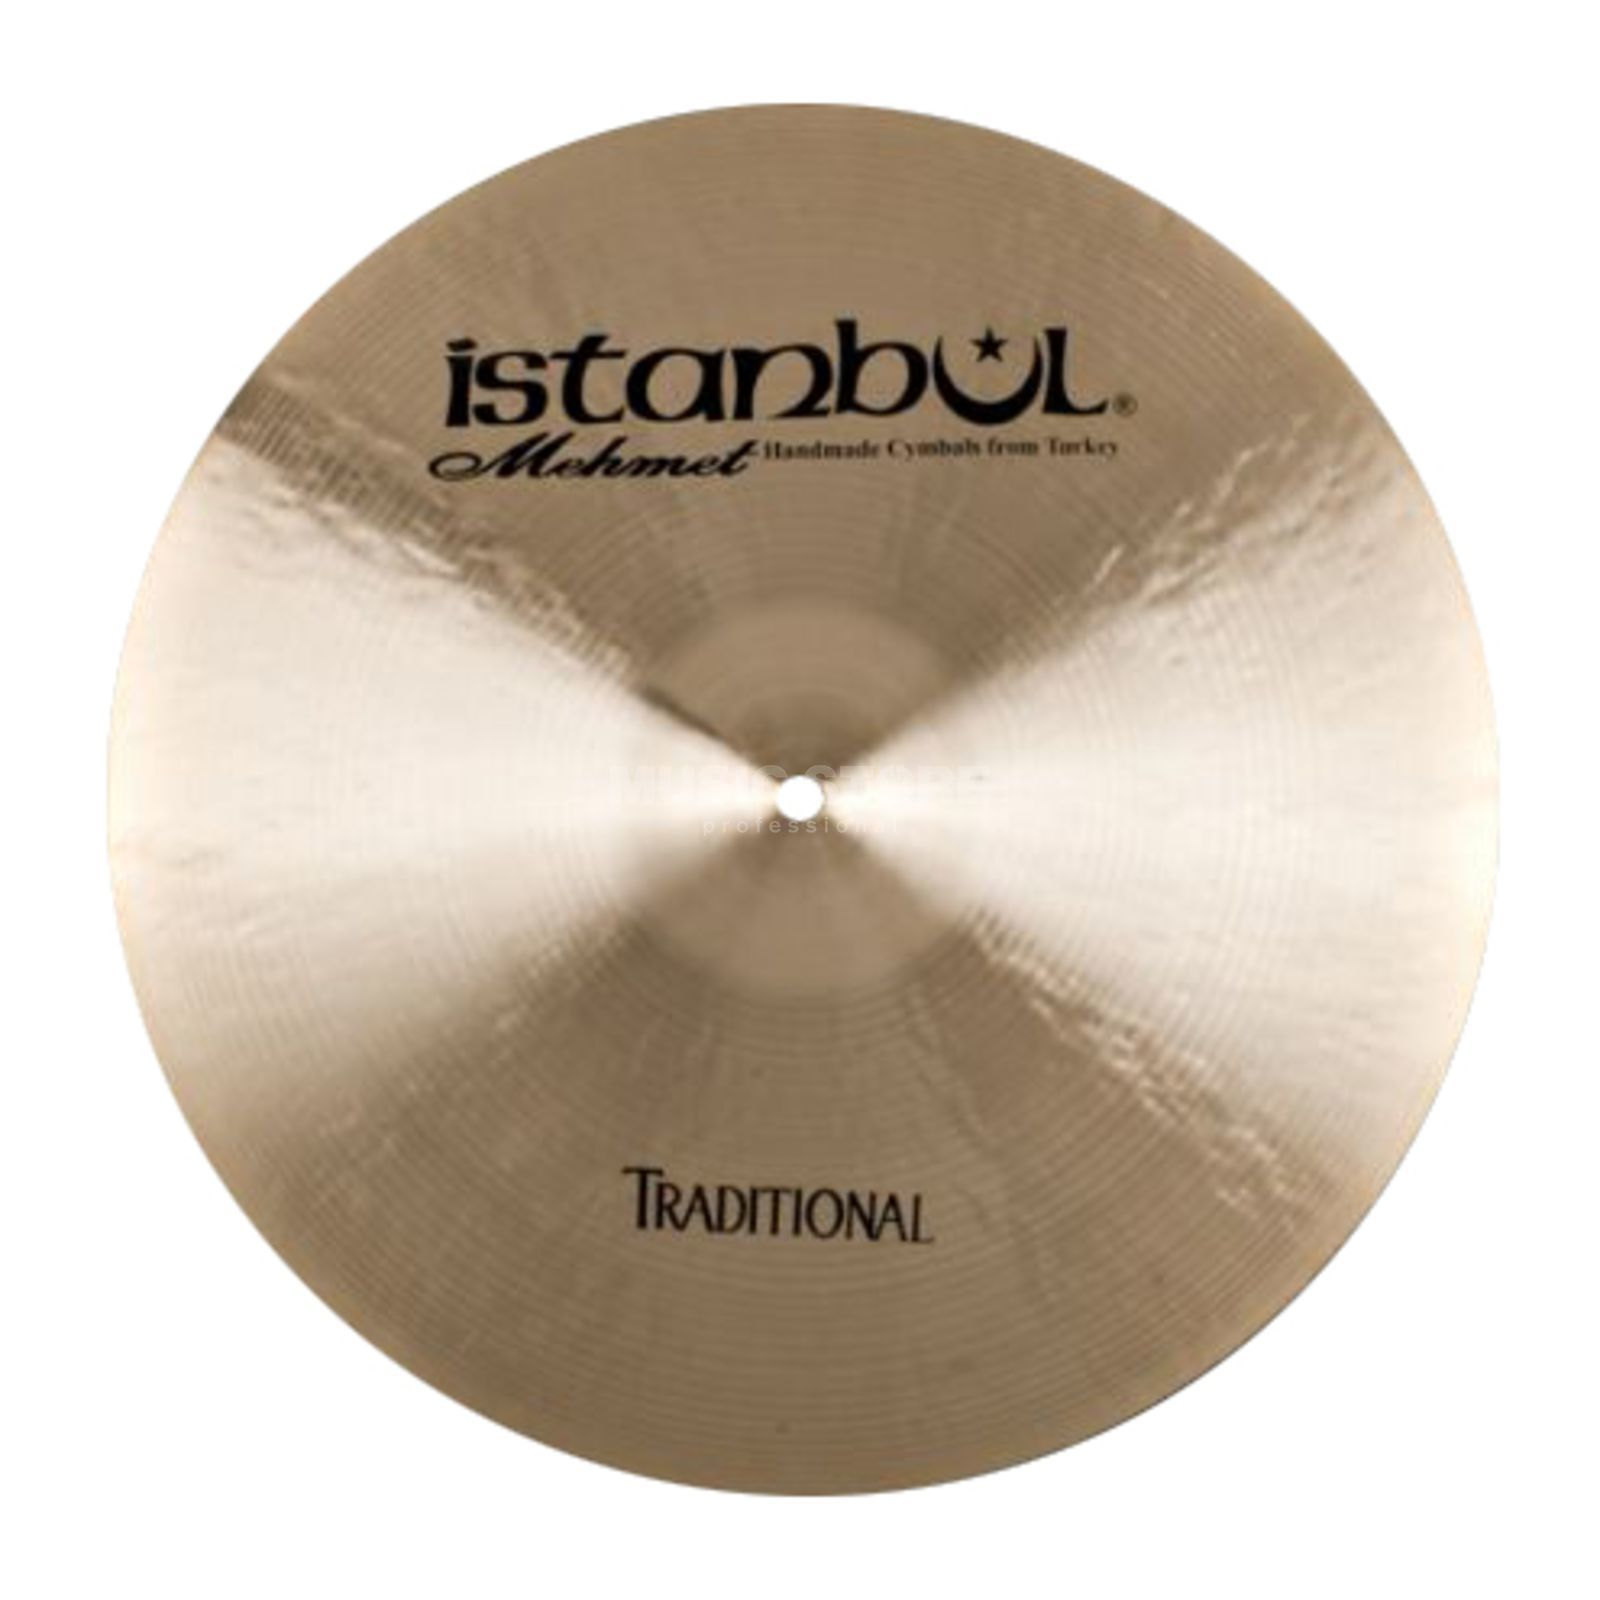 "Istanbul Traditional Medium Crash 14"", CM15 Immagine prodotto"